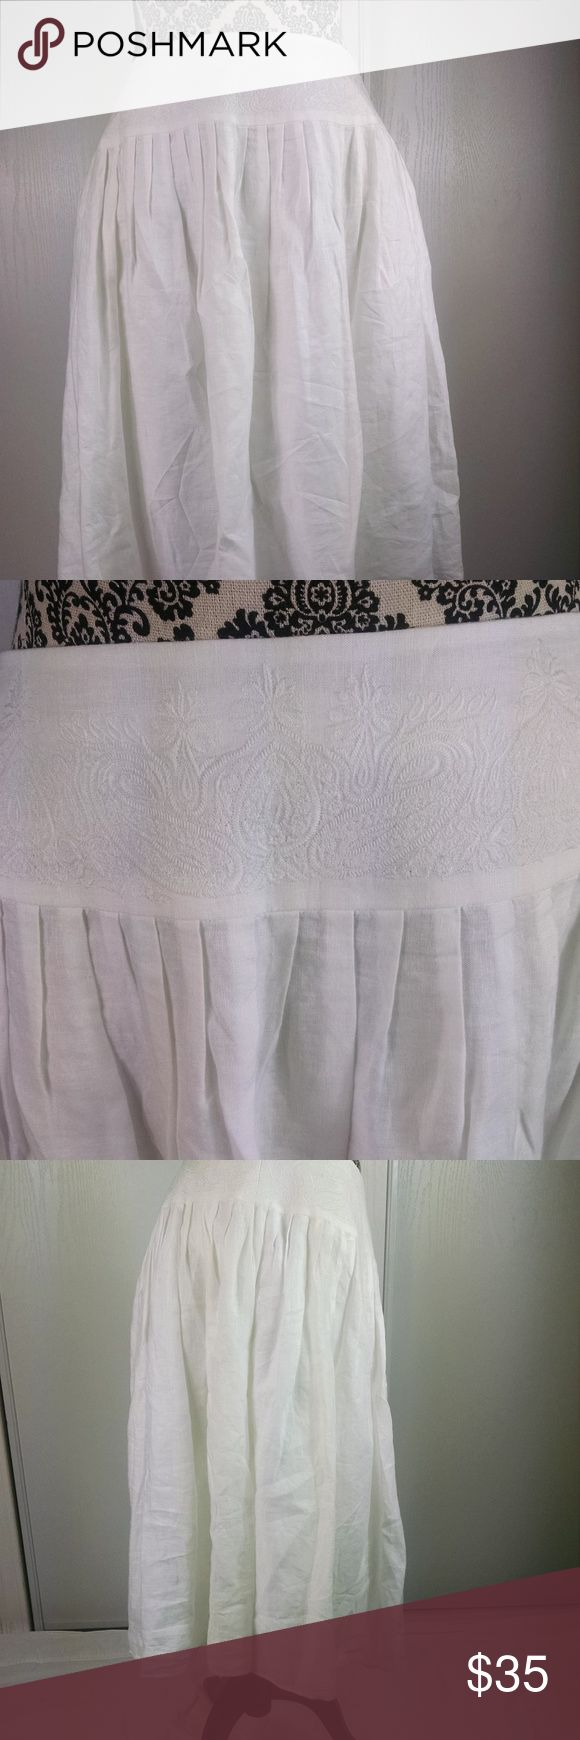 """Lauren by Ralph Lauren skirt size 12 petite white Lauren by Ralph Lauren skirt size 12 petite white flare 100% linen embroidery. Gently used condition, no flaws and from a smoke free home.  Material is 100% linen.  Approximate measurements are 17"""" waist laying flat and 25.5"""" from waist to bottom hem.  We ship same or next business day. Ralph Lauren Skirts"""